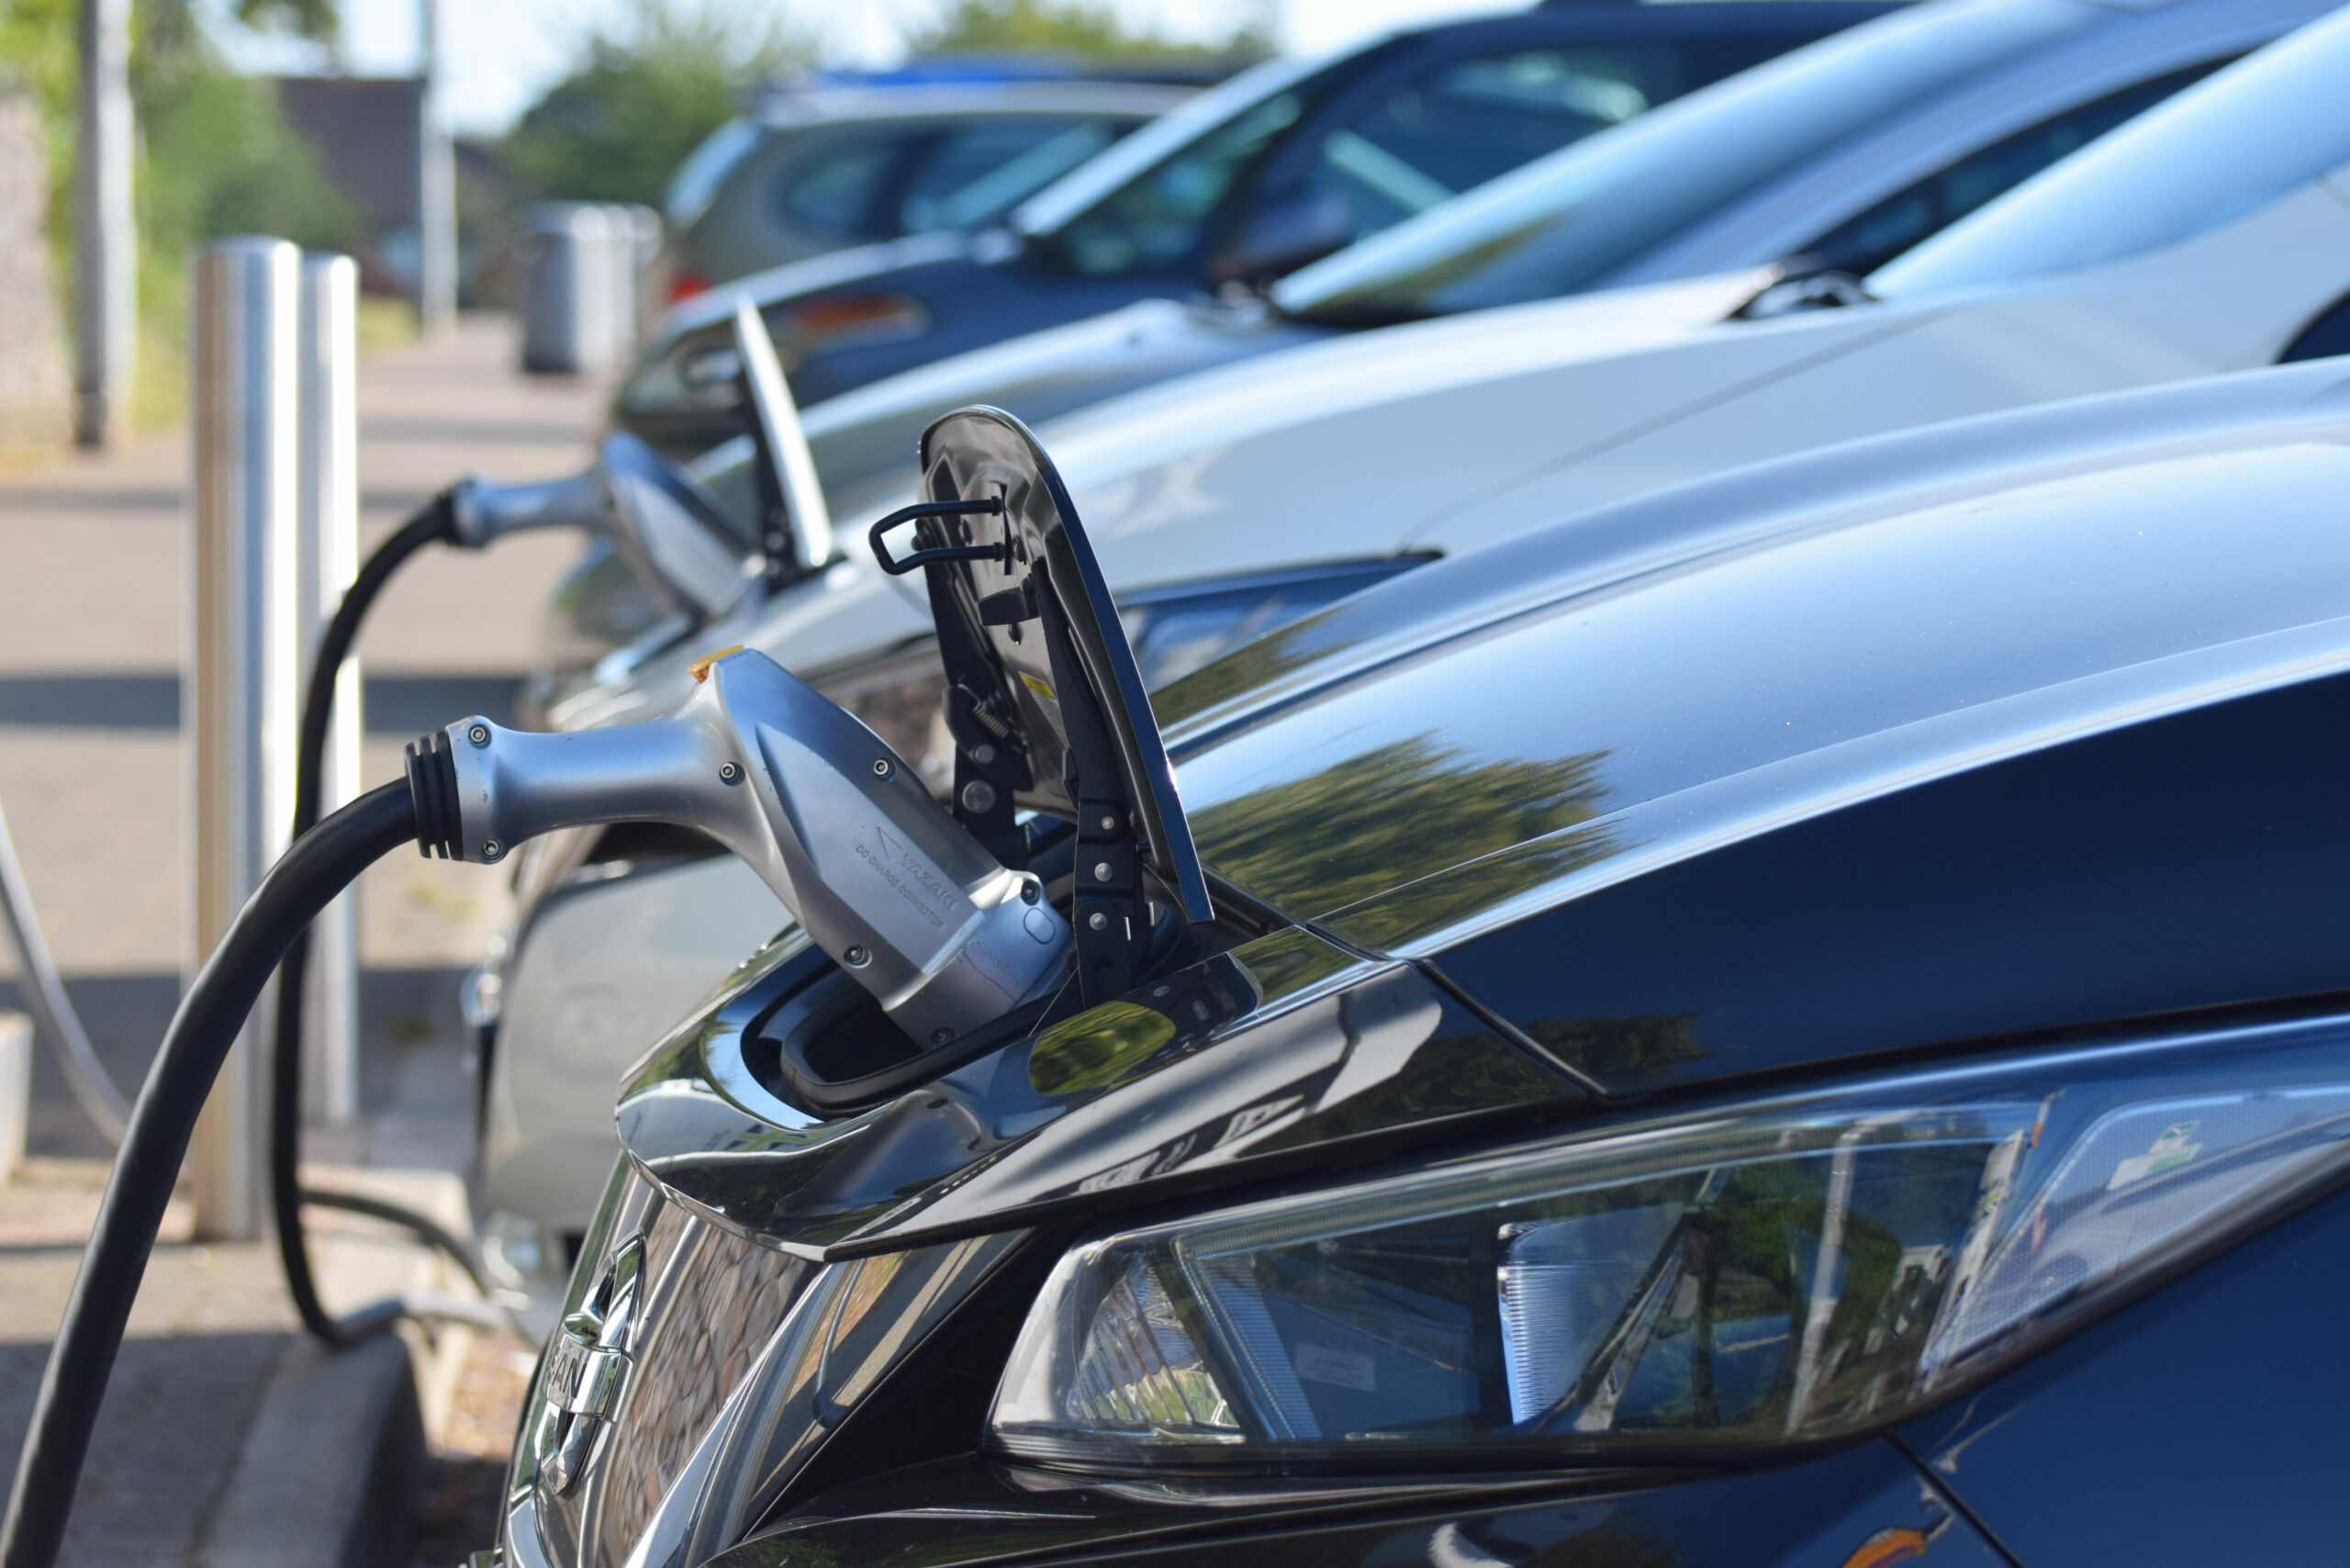 Drivers think electric vehicles are too expensive, study reveals